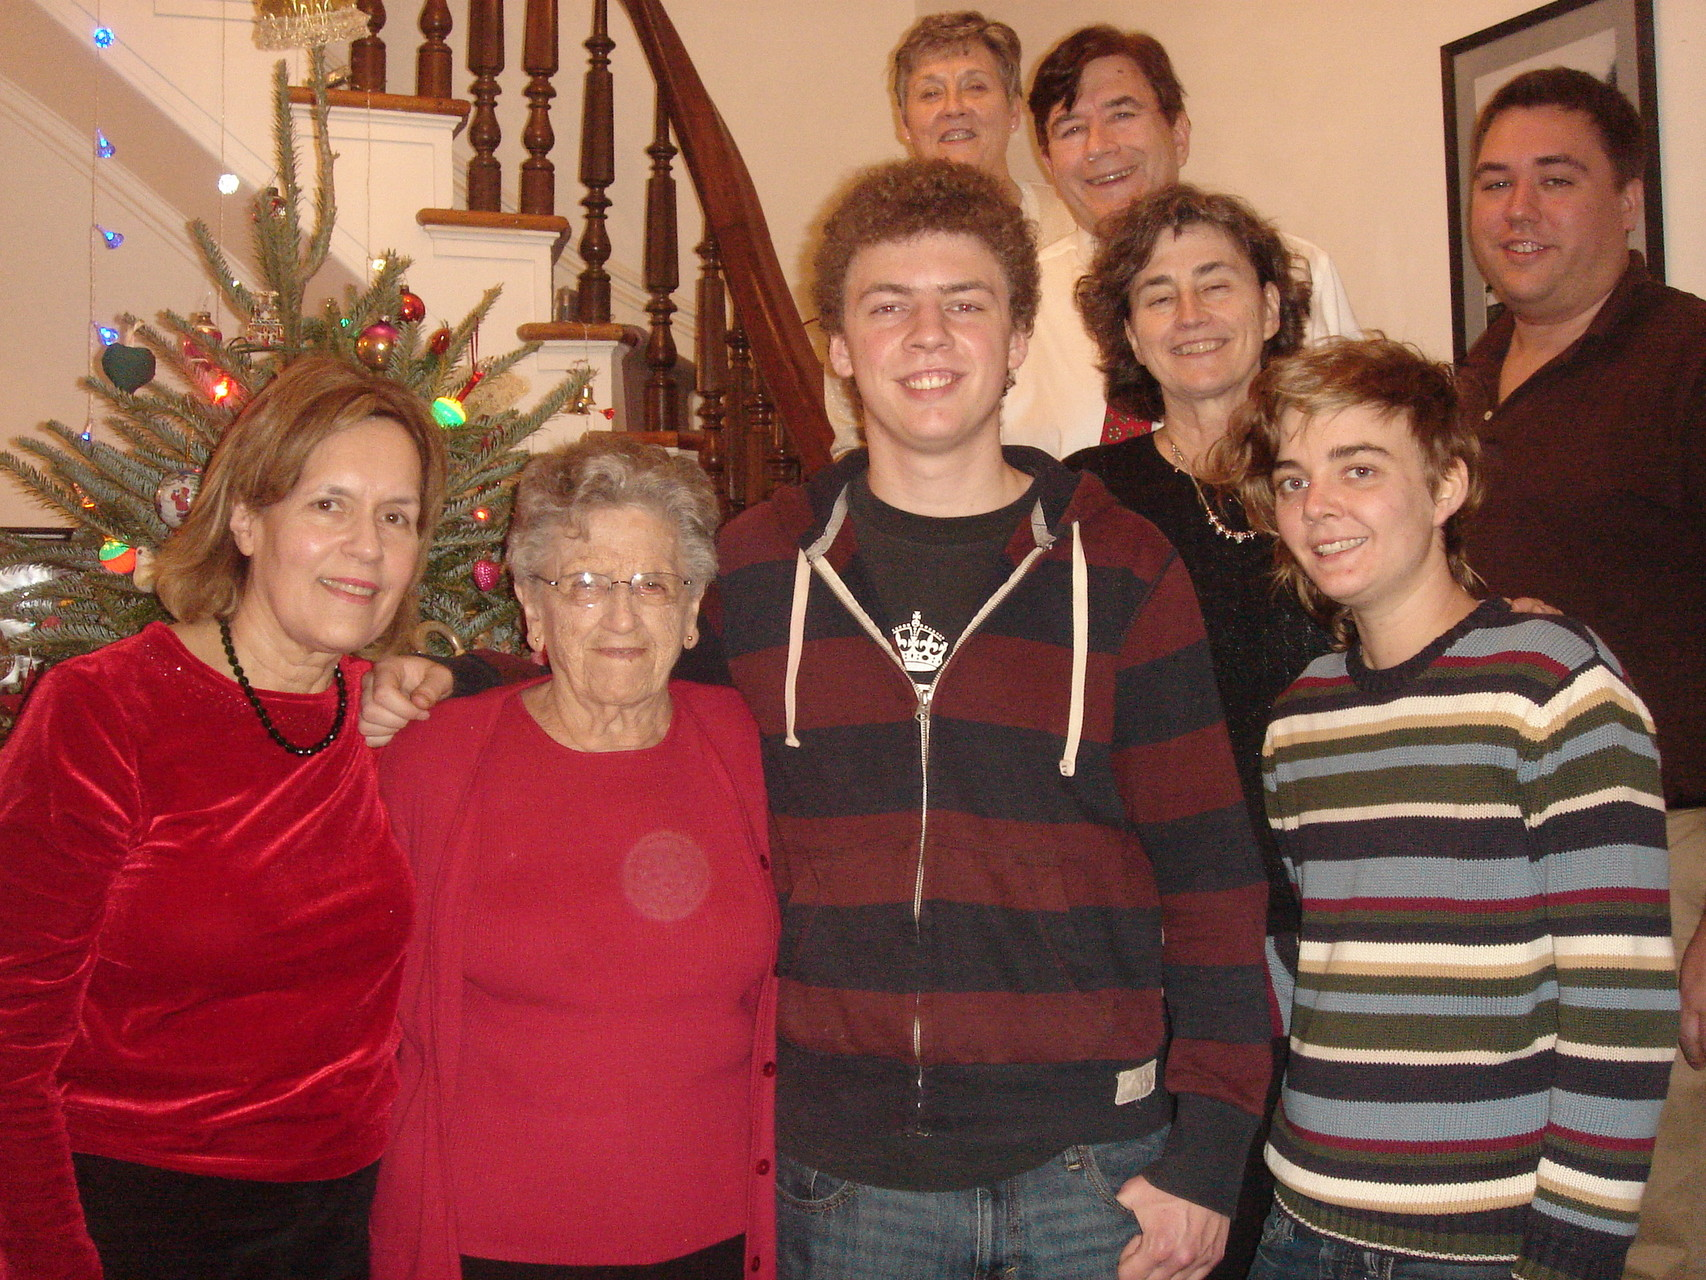 Lorraine, Mary Lou, Ben, Cindy, John, Ann, & Kathleen, Greg Wagner Xmas in NYC Dec. 2014